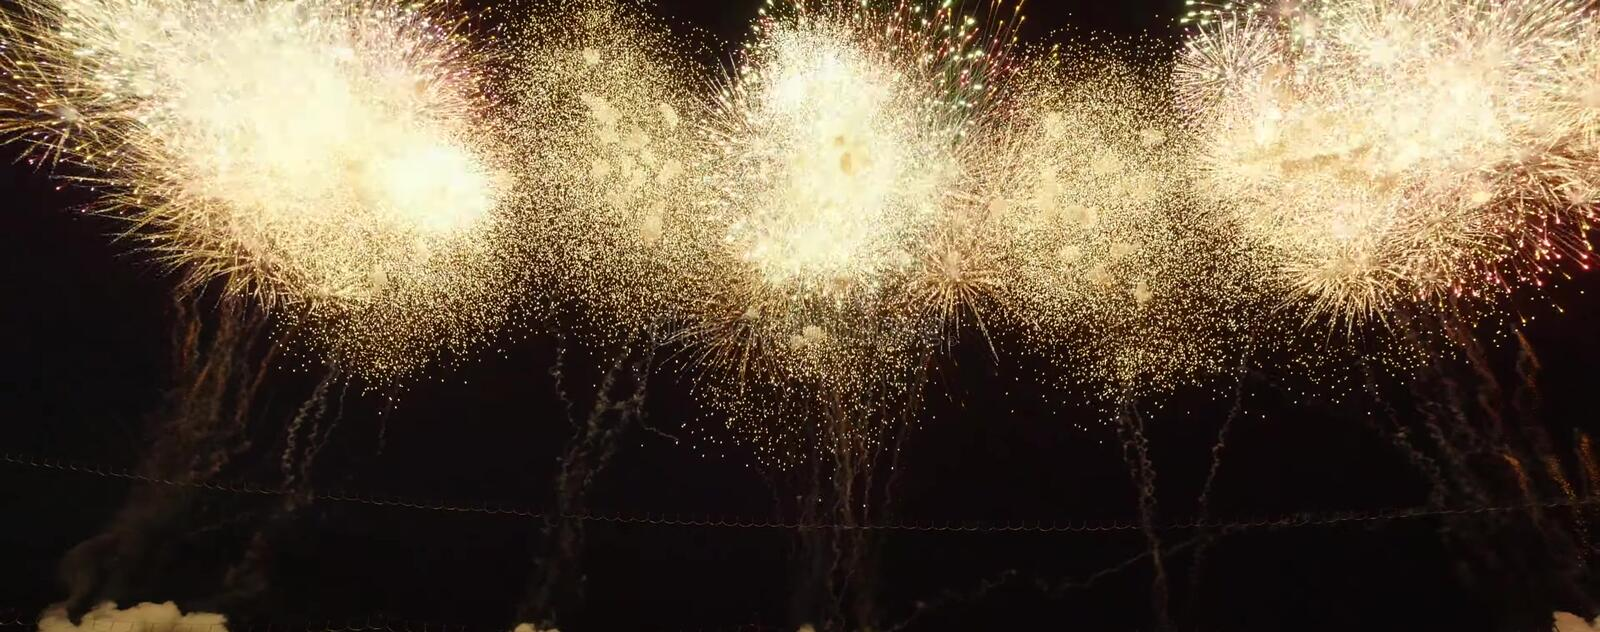 Japanese Superb view fireworks stock image